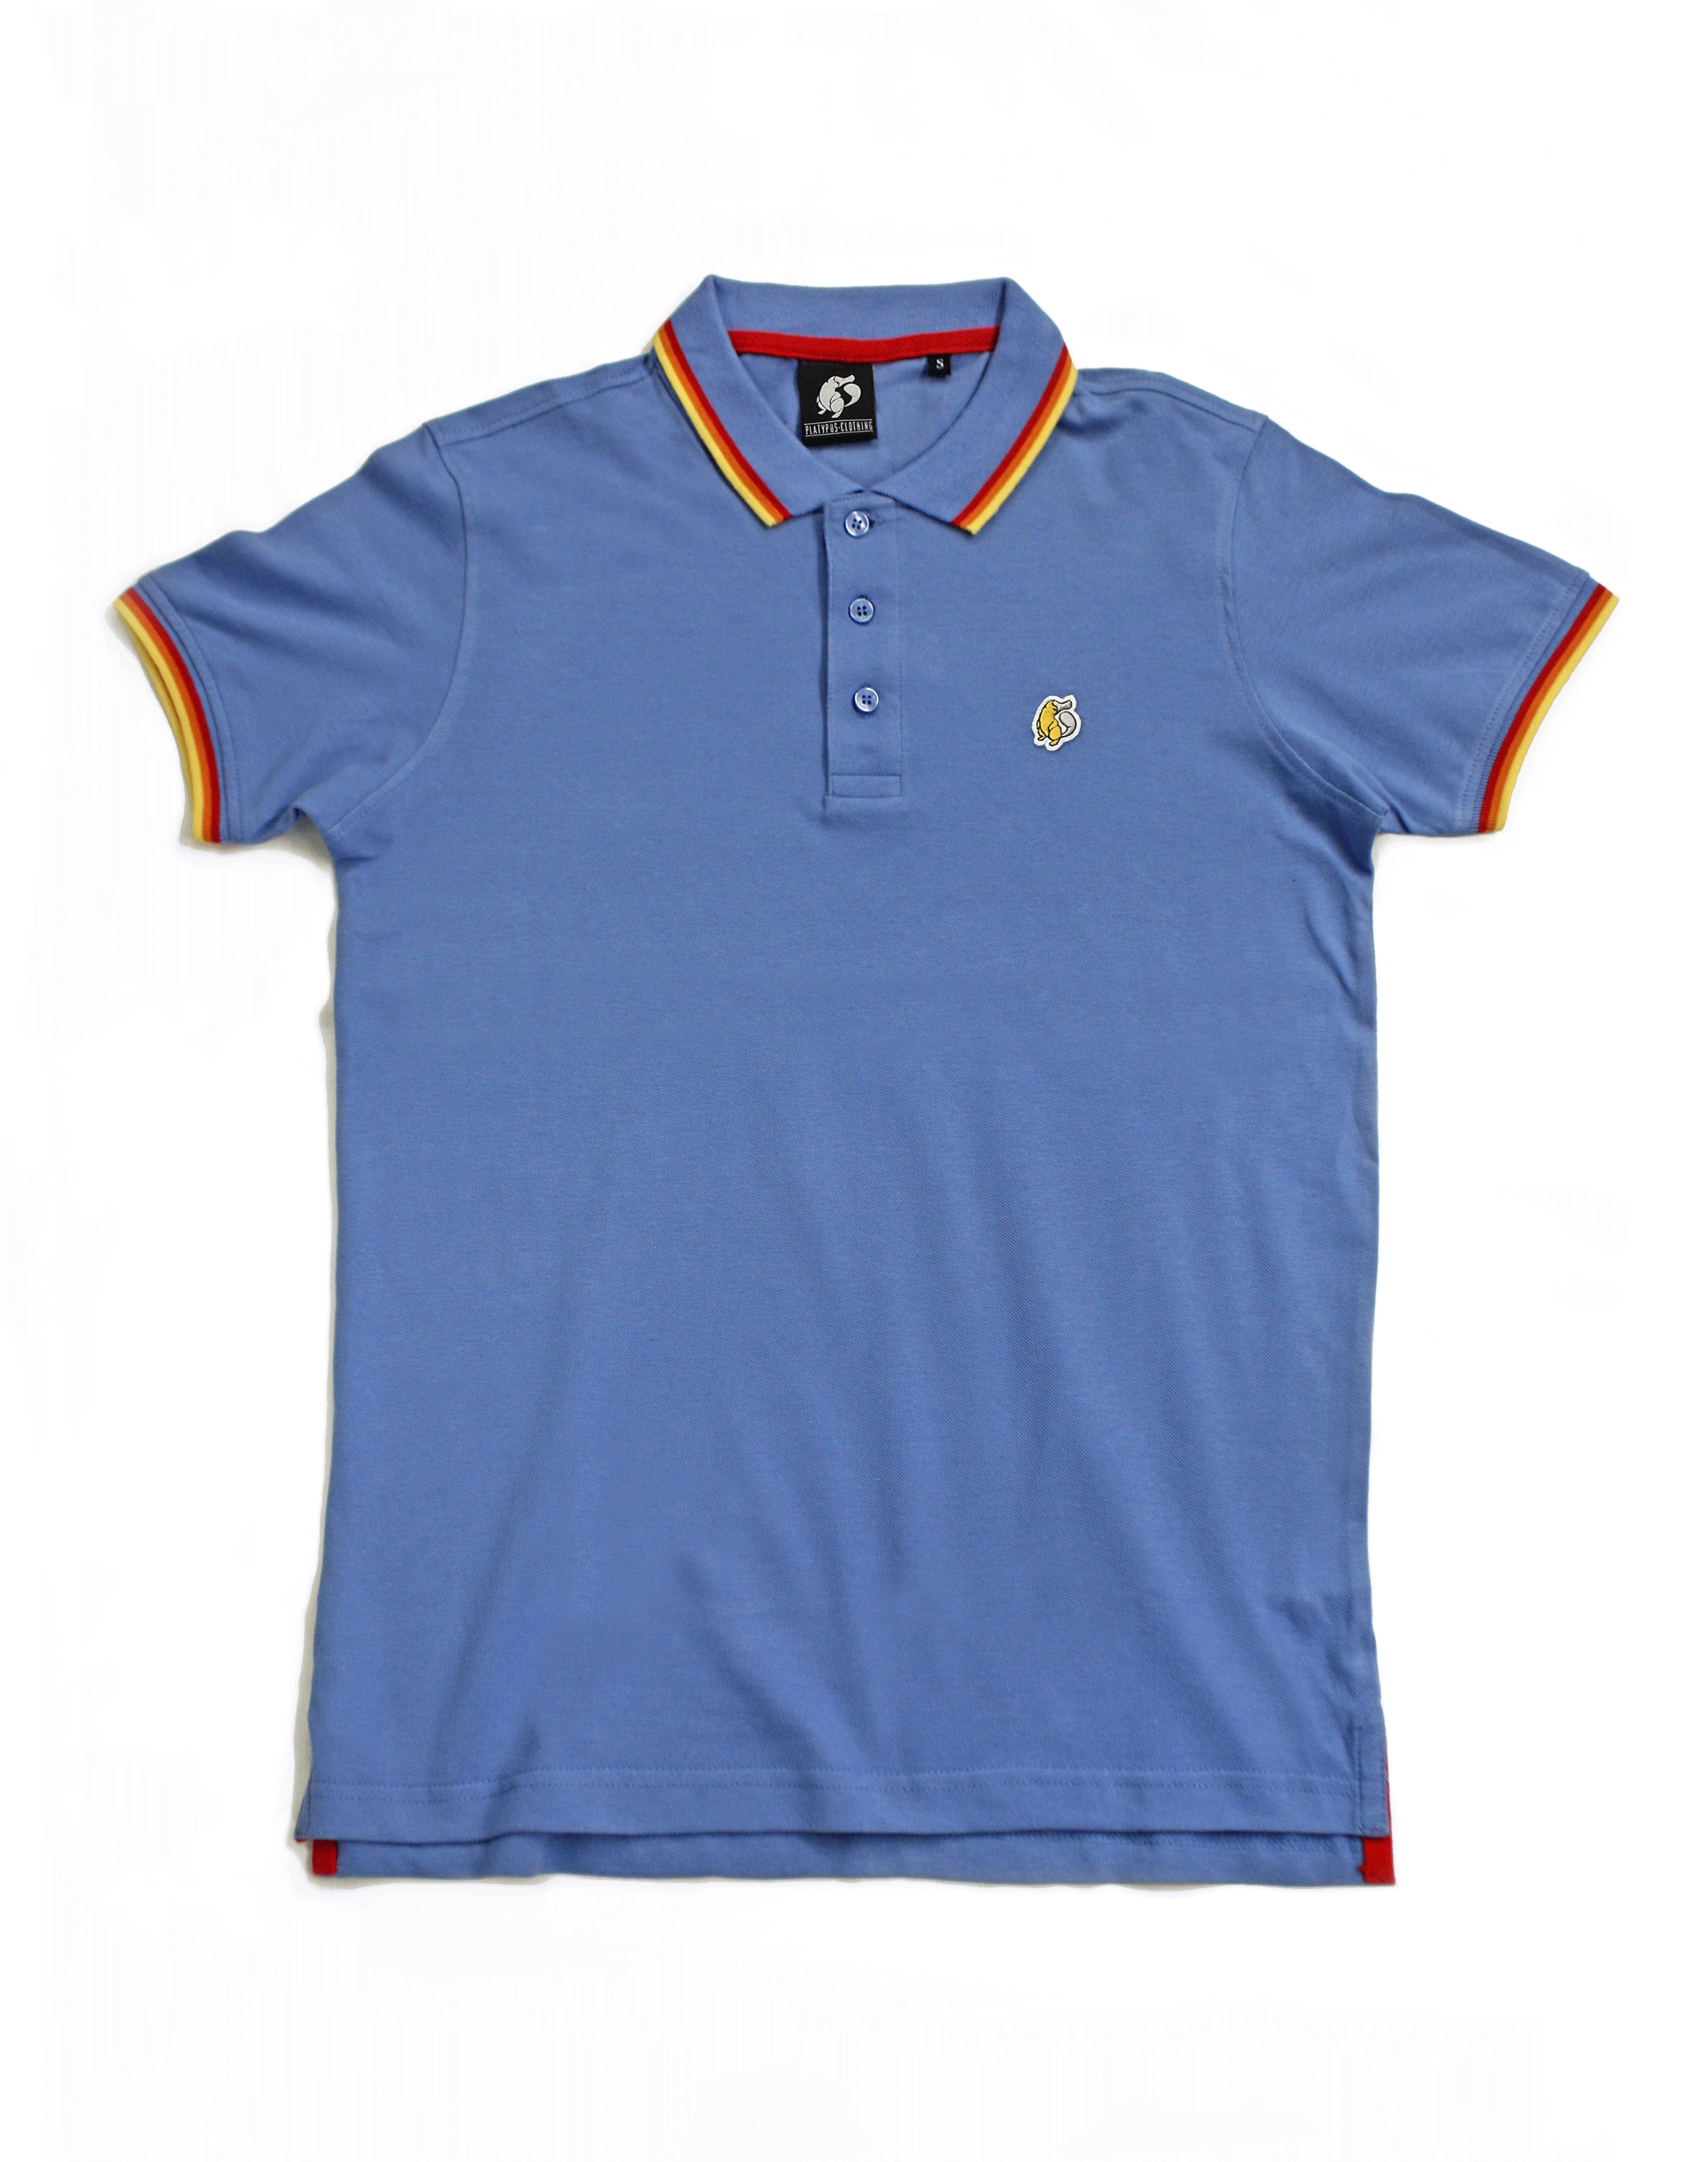 Rainbow Tipped Blue Platypus Emblem Polo Unisex Shirt Hero